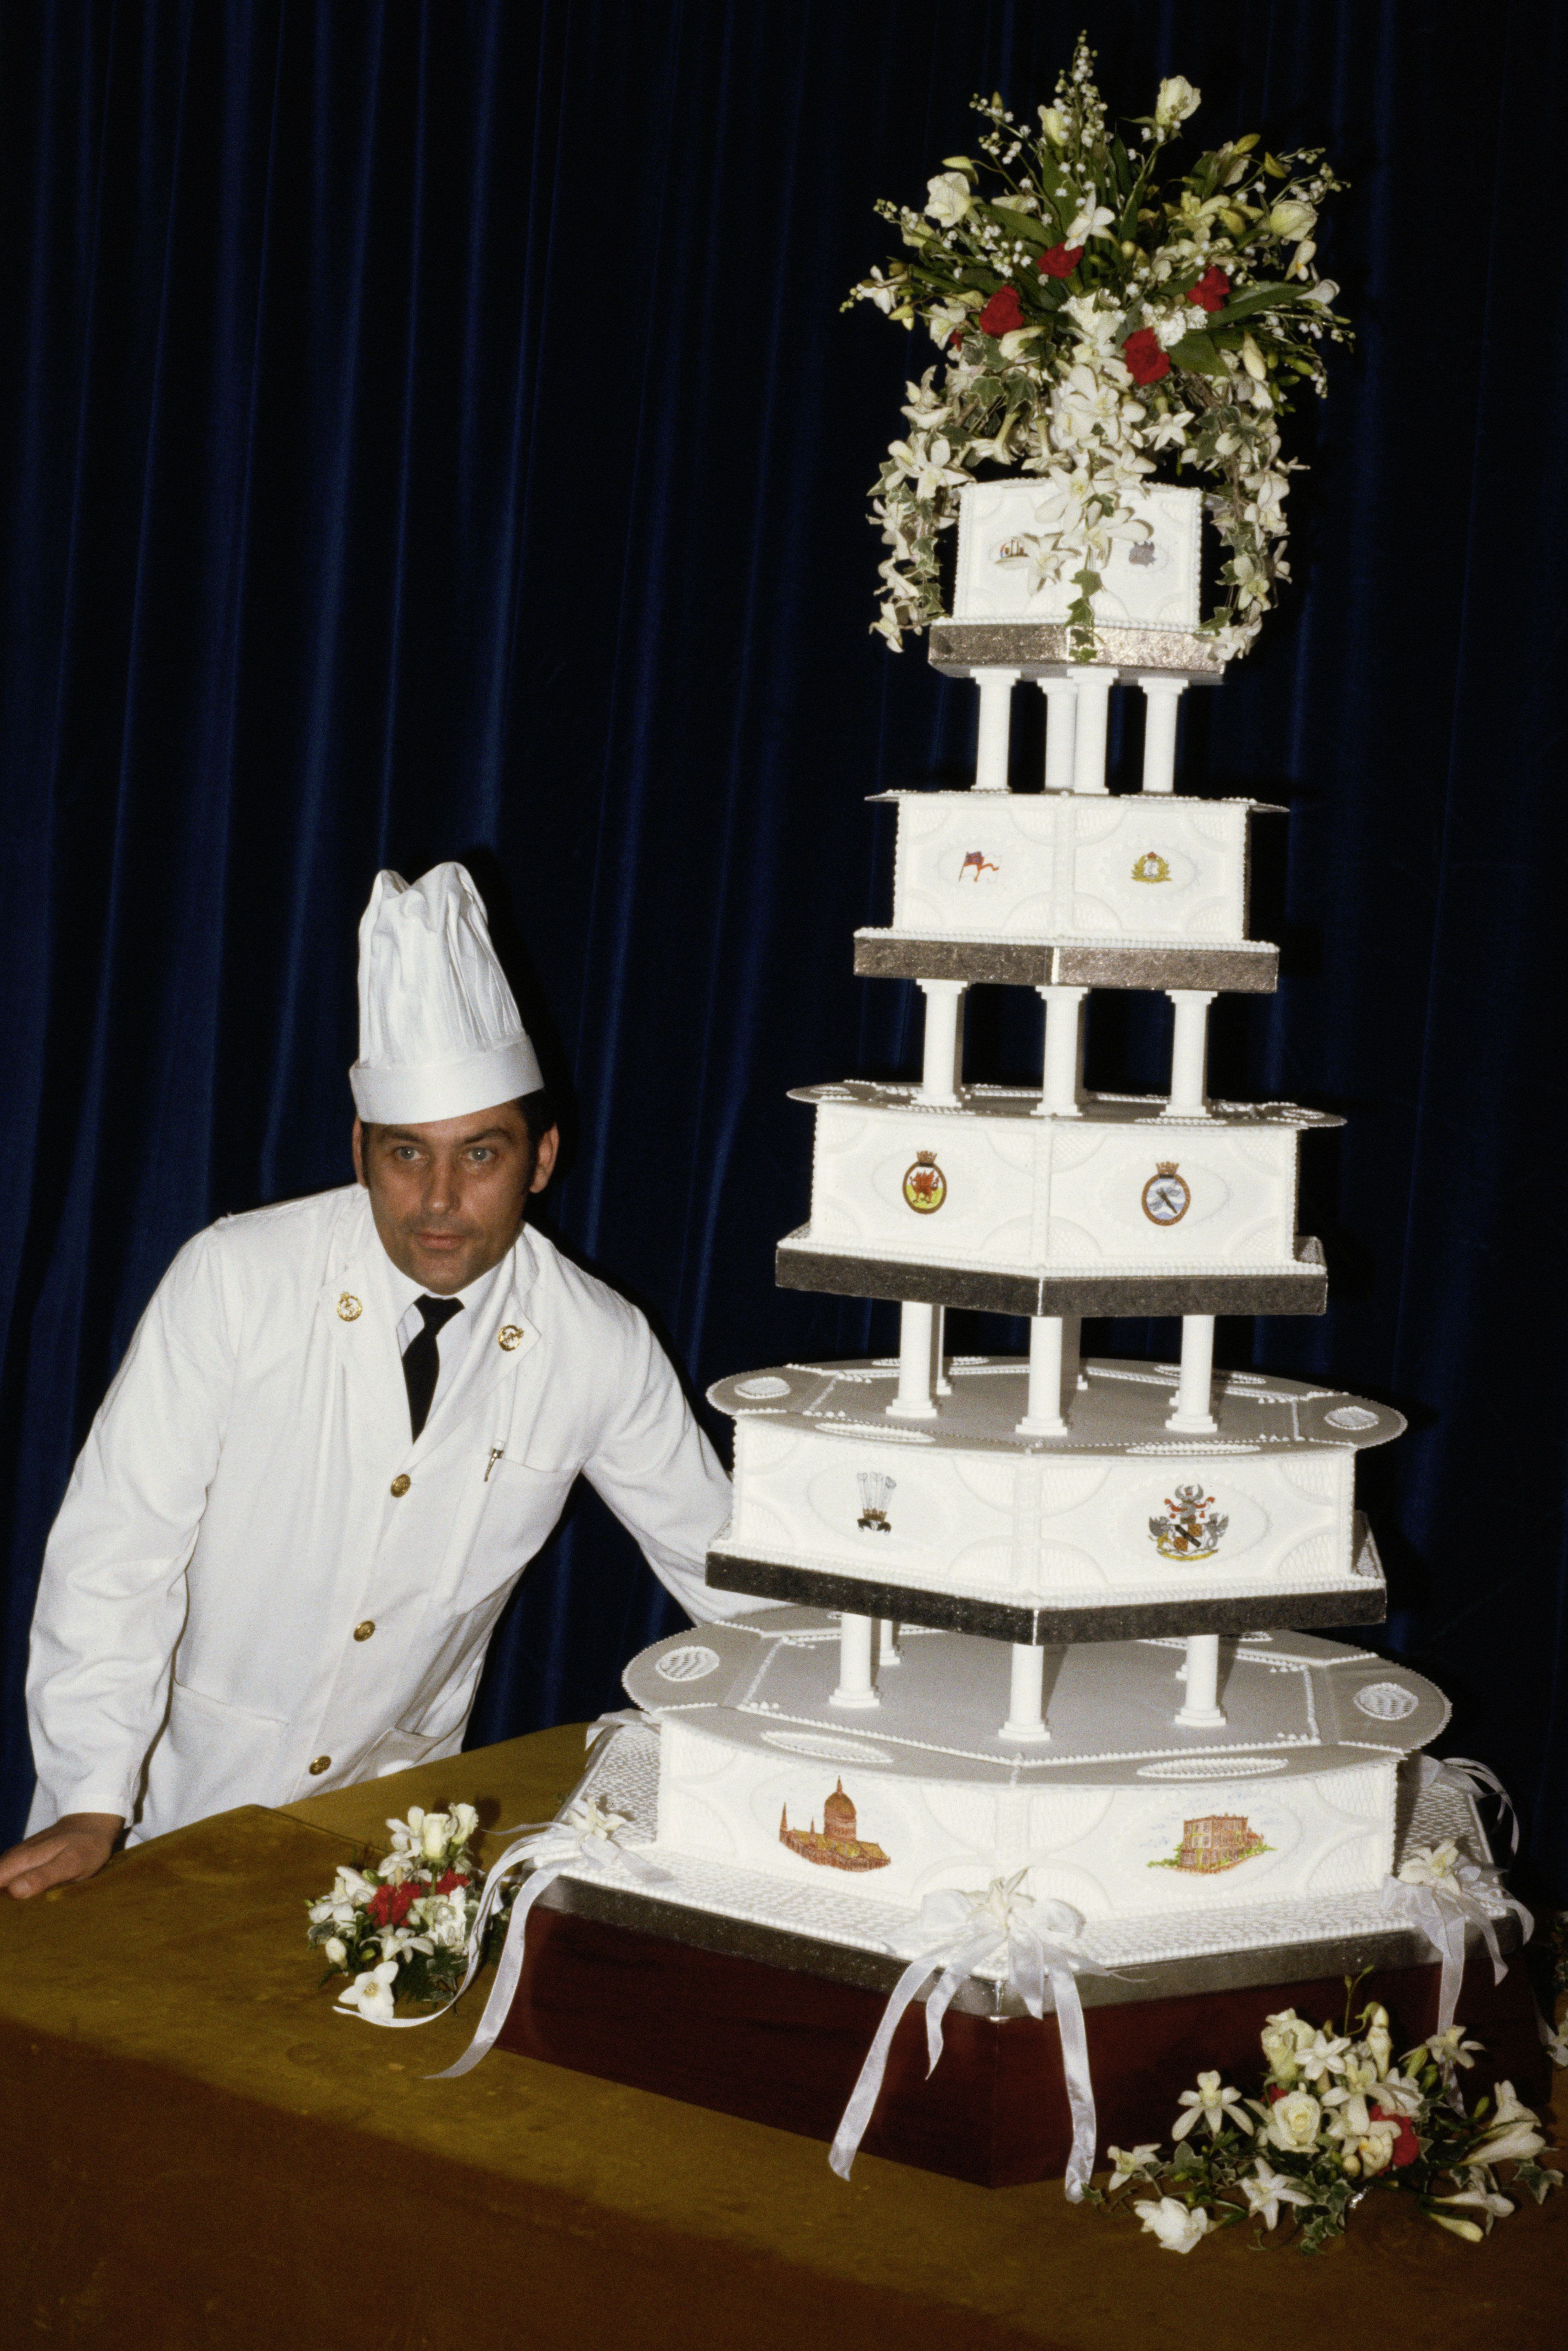 David Avery, head baker at the Royal Naval Cooking School, displays Charles and Diana's multi-tier fruitcake...